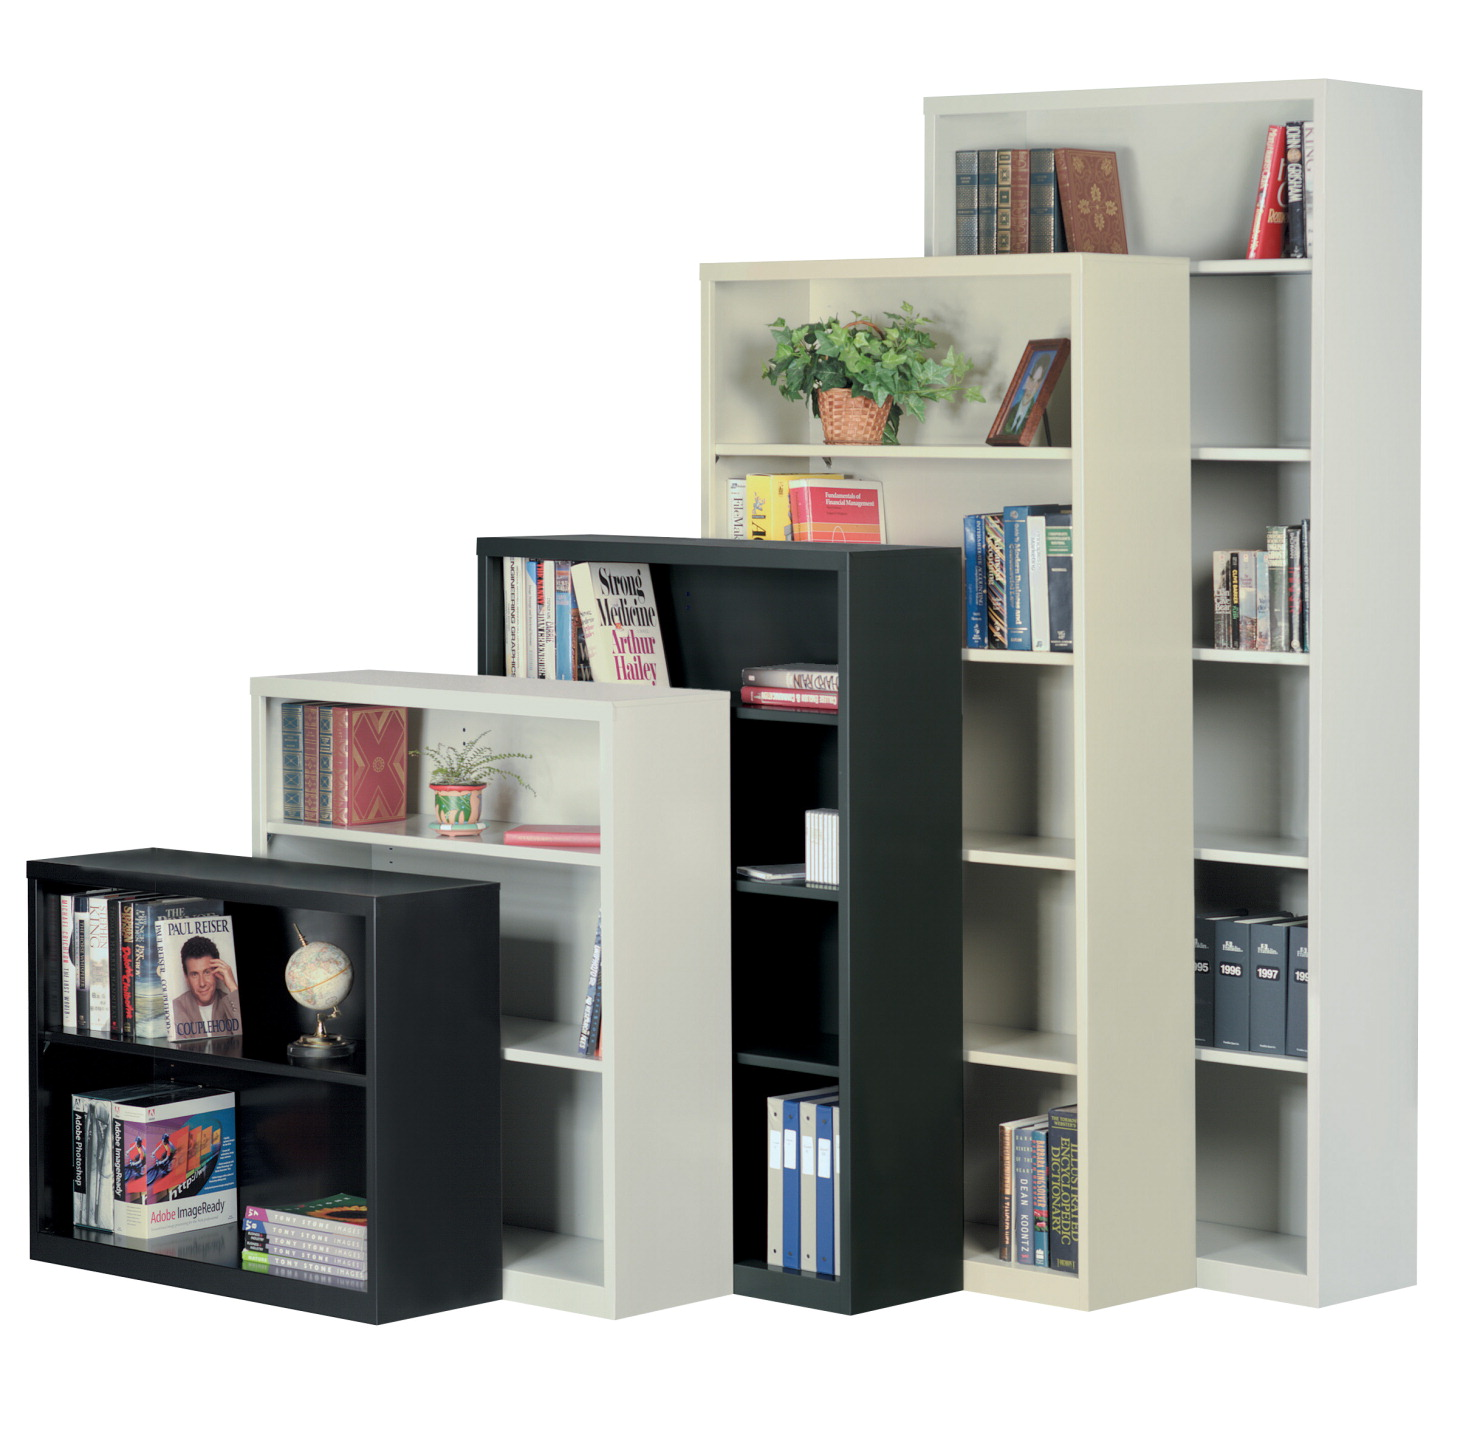 buyjohn abacus shelf main at john certified bookcase fsc lewis oak johnlewis online rsp pdp